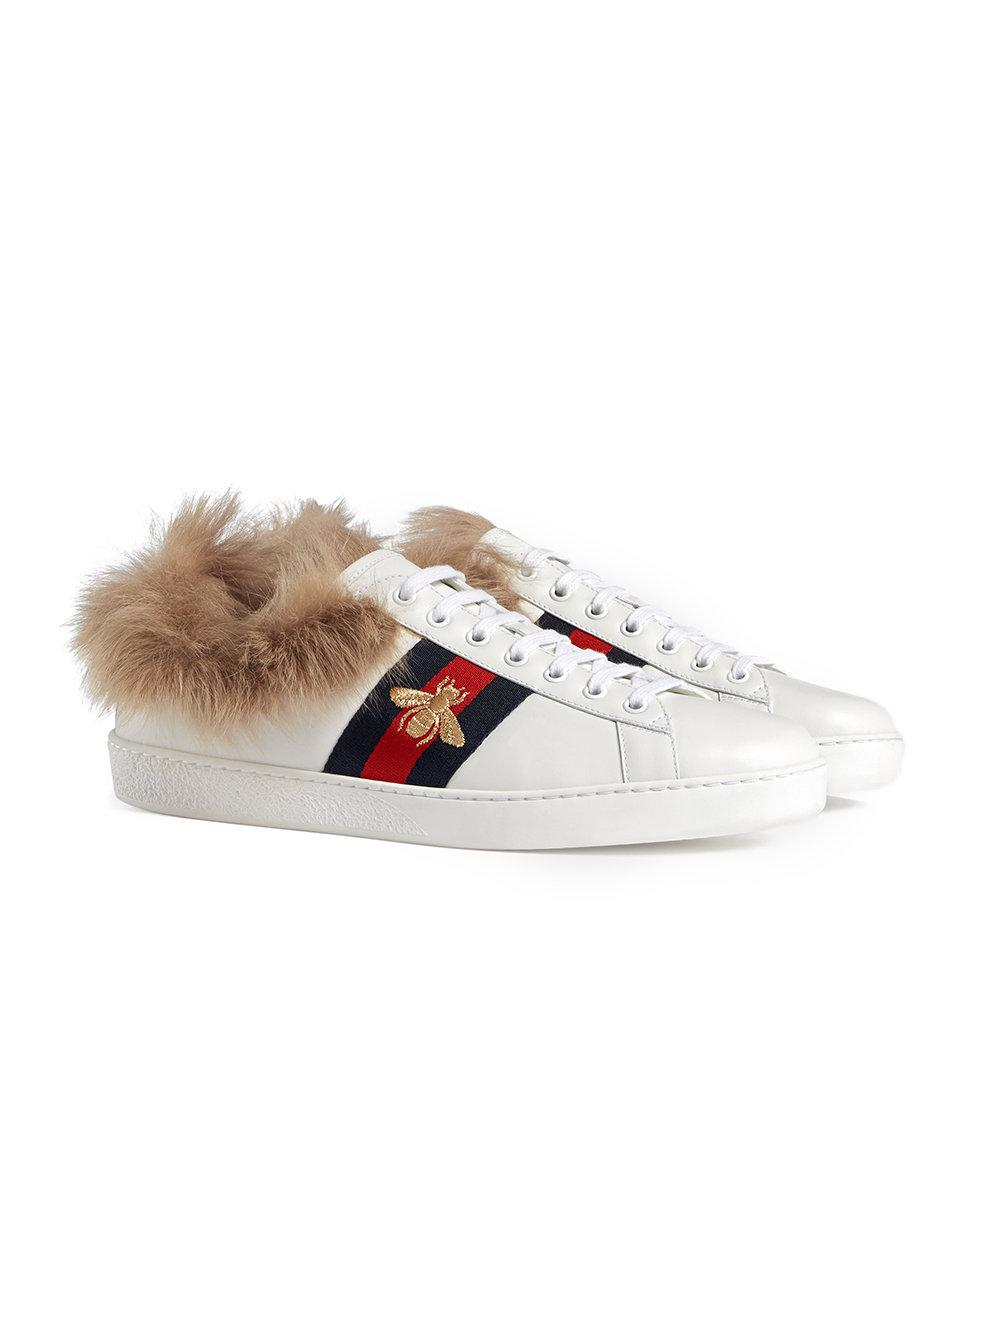 0a29a4439c3 Lyst - Gucci Ace Sneaker With Fur in White for Men